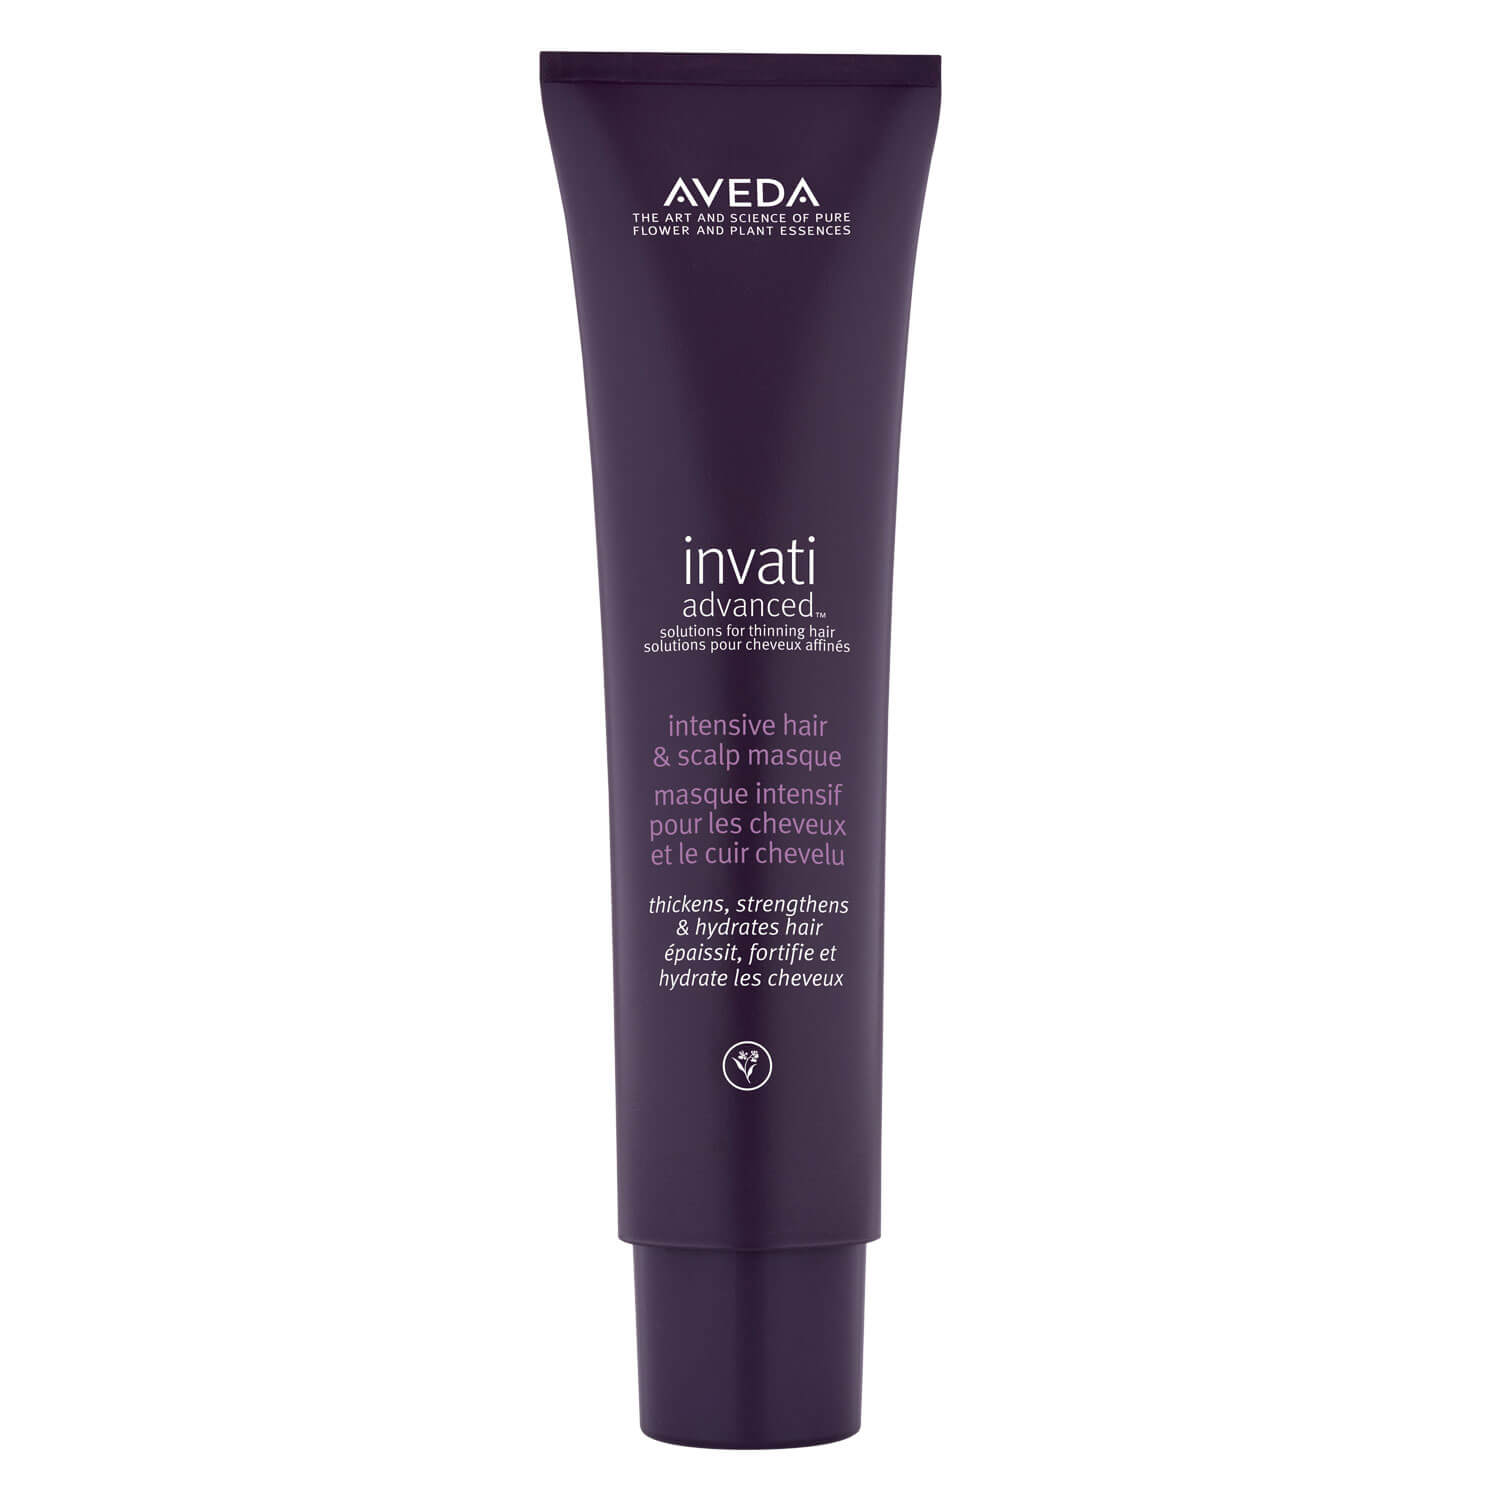 invati advanced - intensive hair & scalp masque